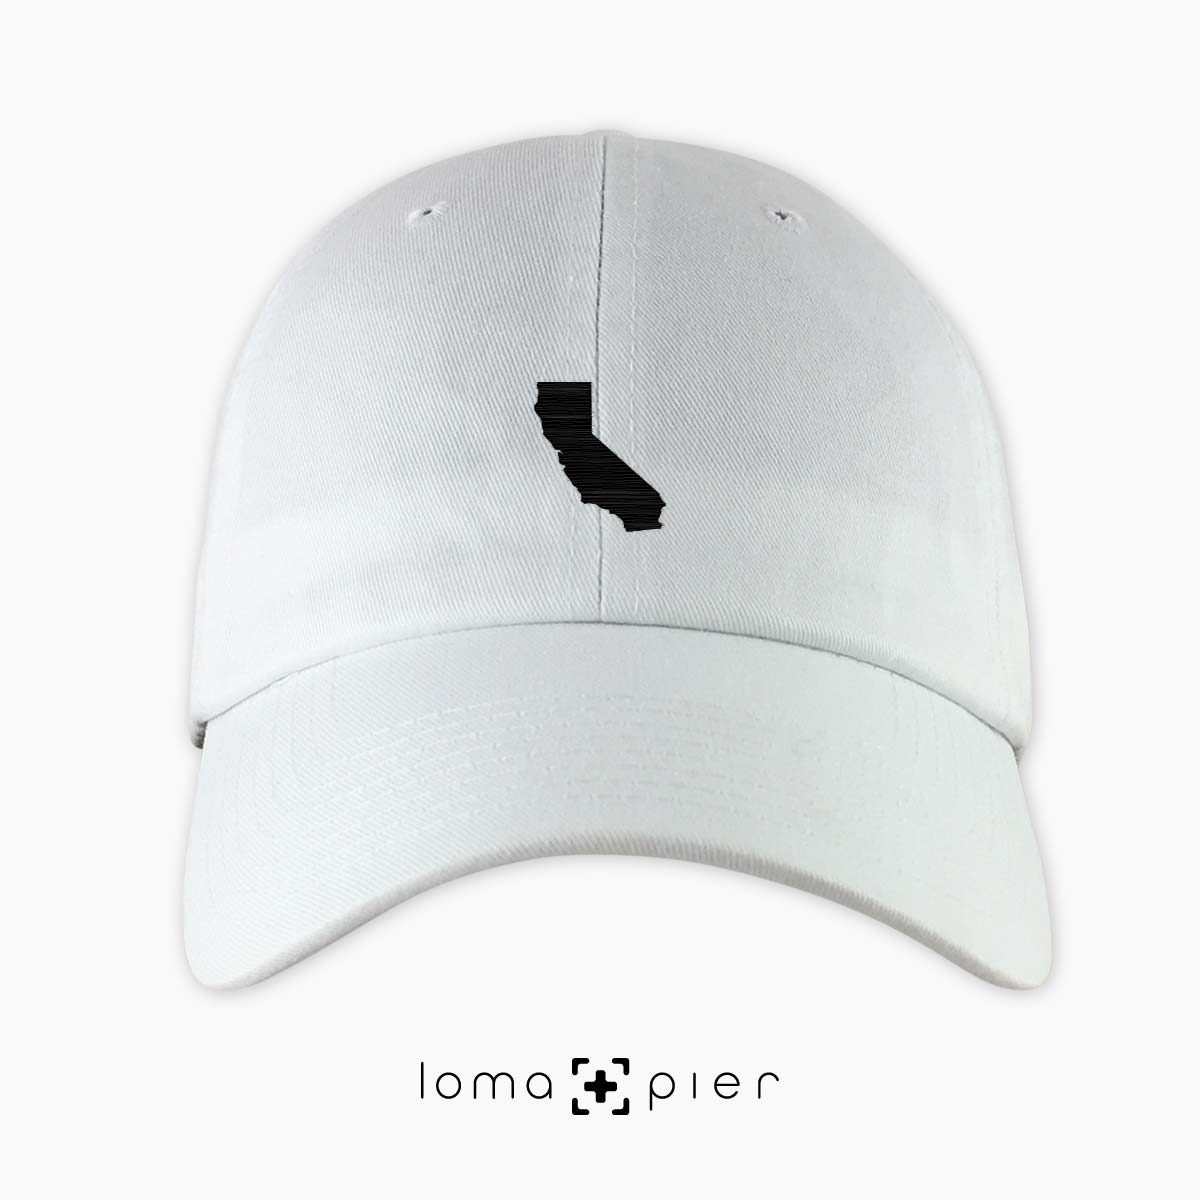 CALIFORNIA silhouette icon embroidered on a white unstructured dad hat by loma+pier hat store made in the USA